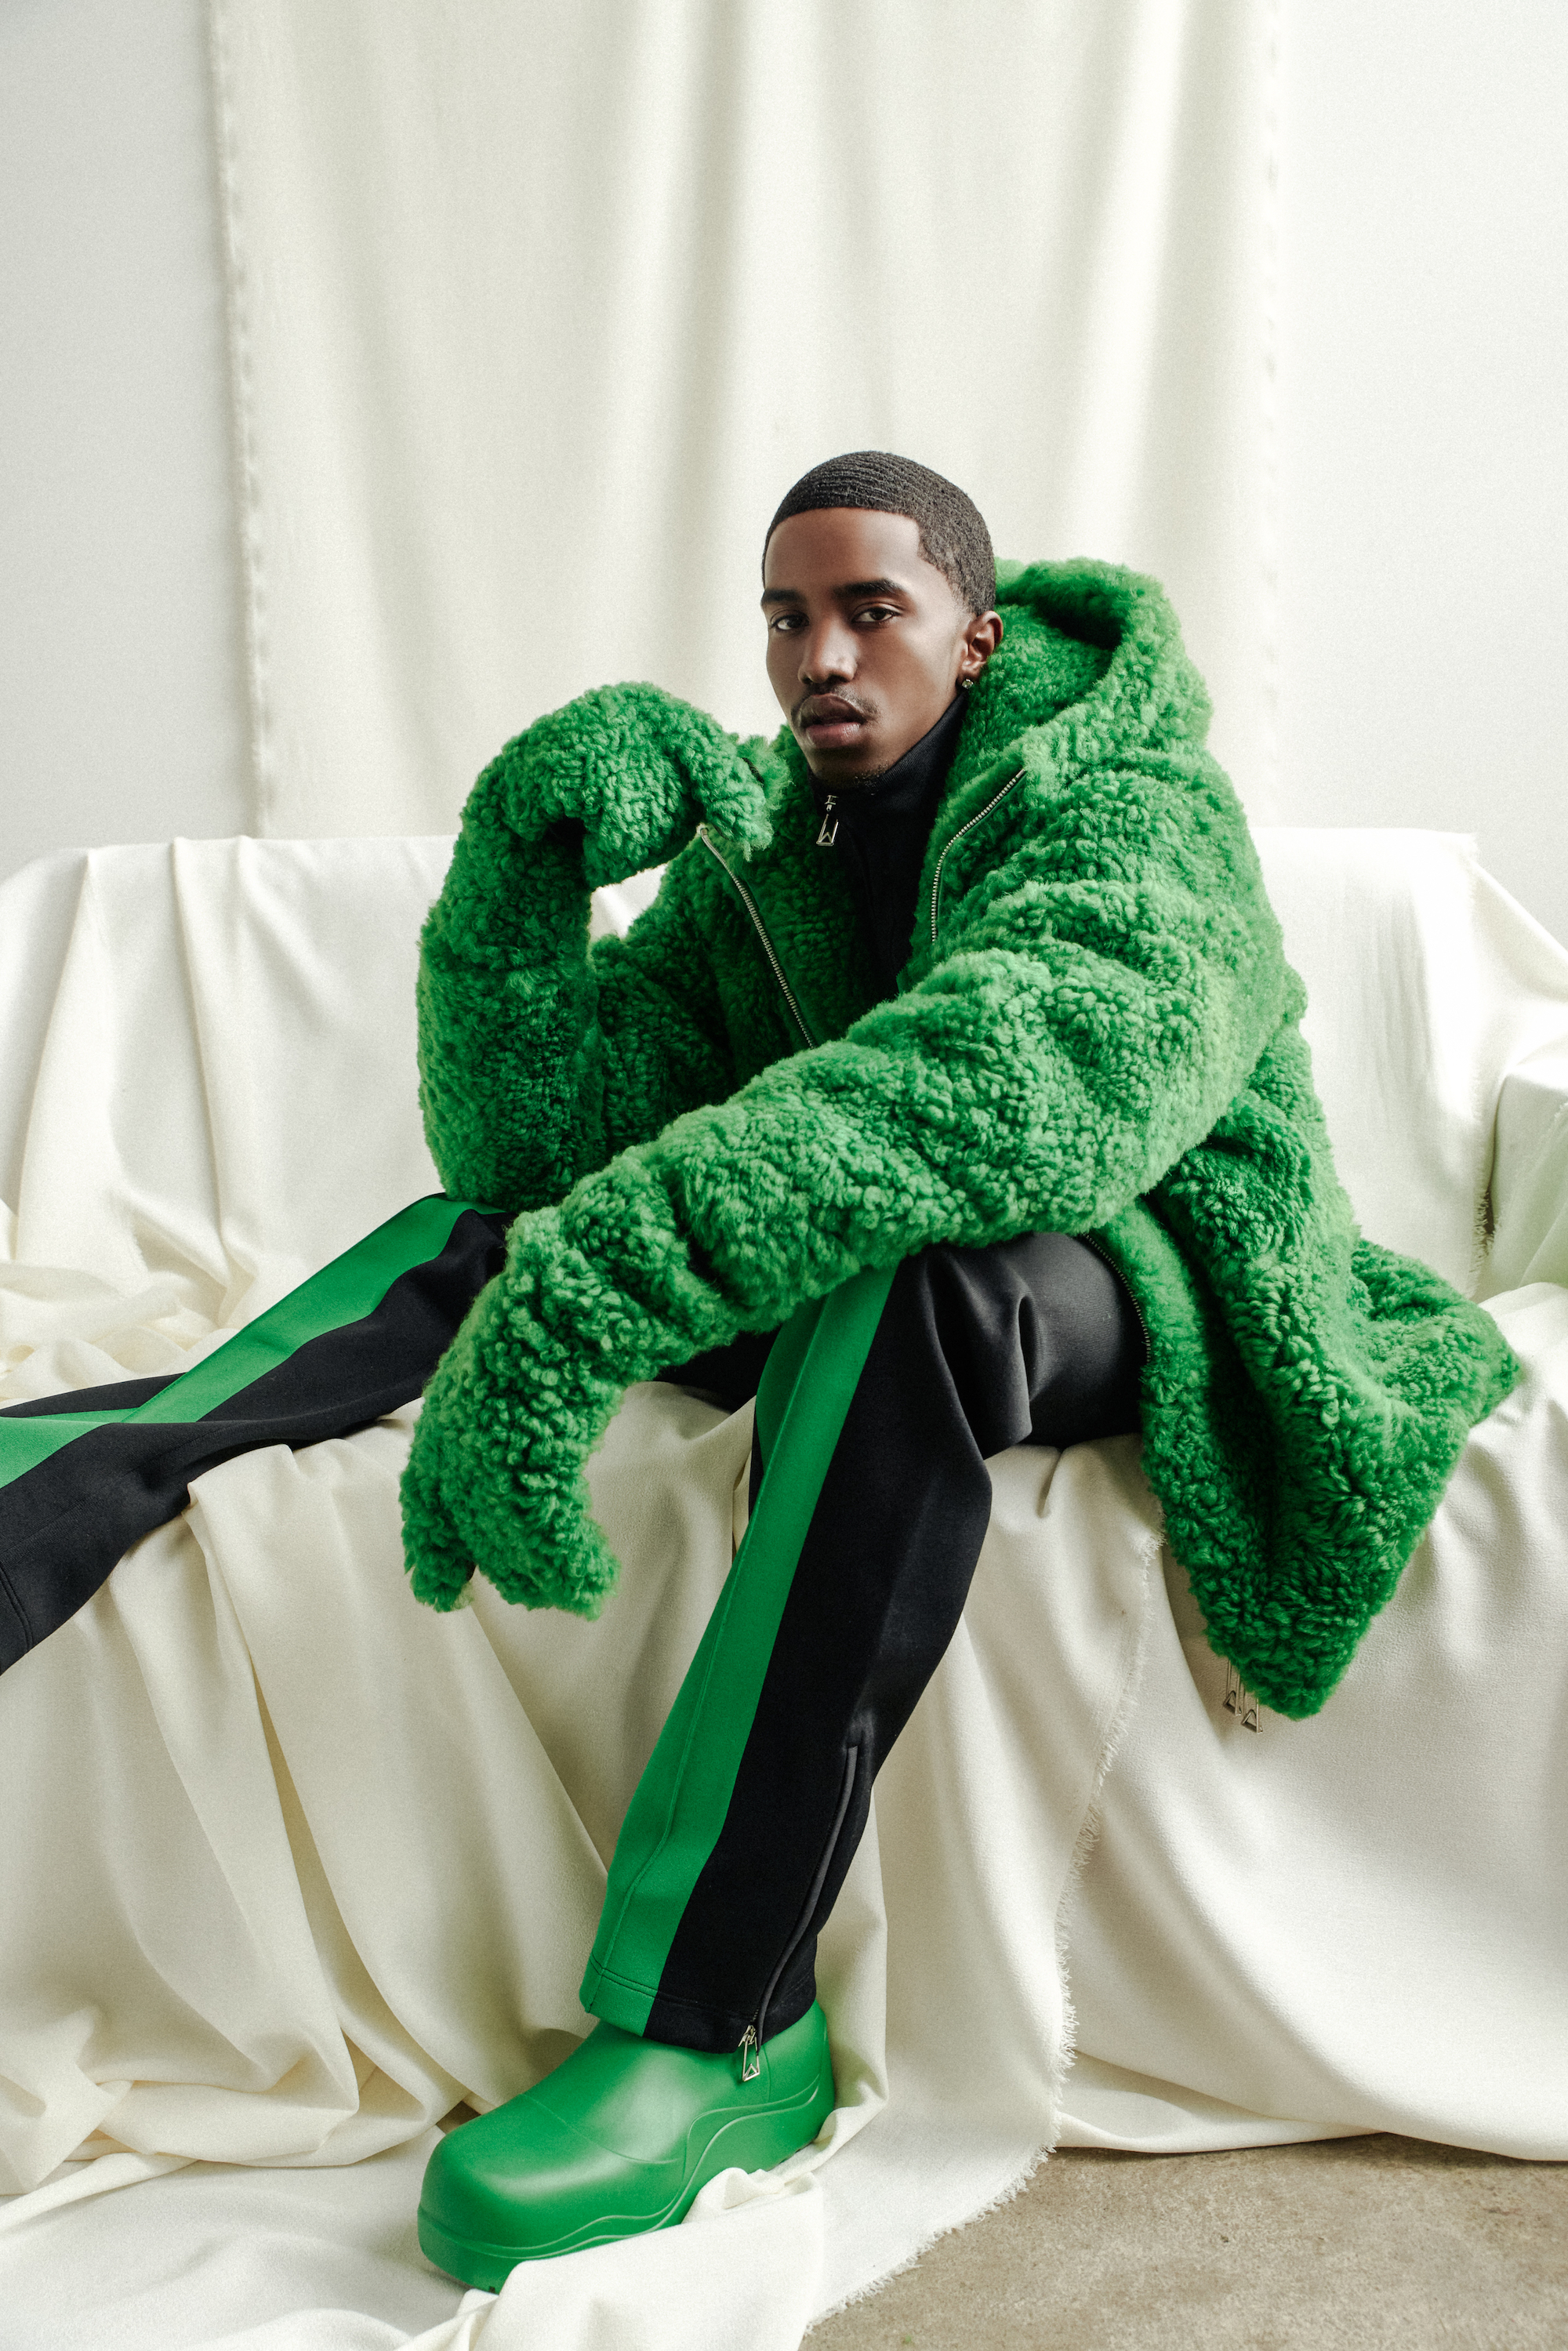 PAUSE Meets: Christian Combs